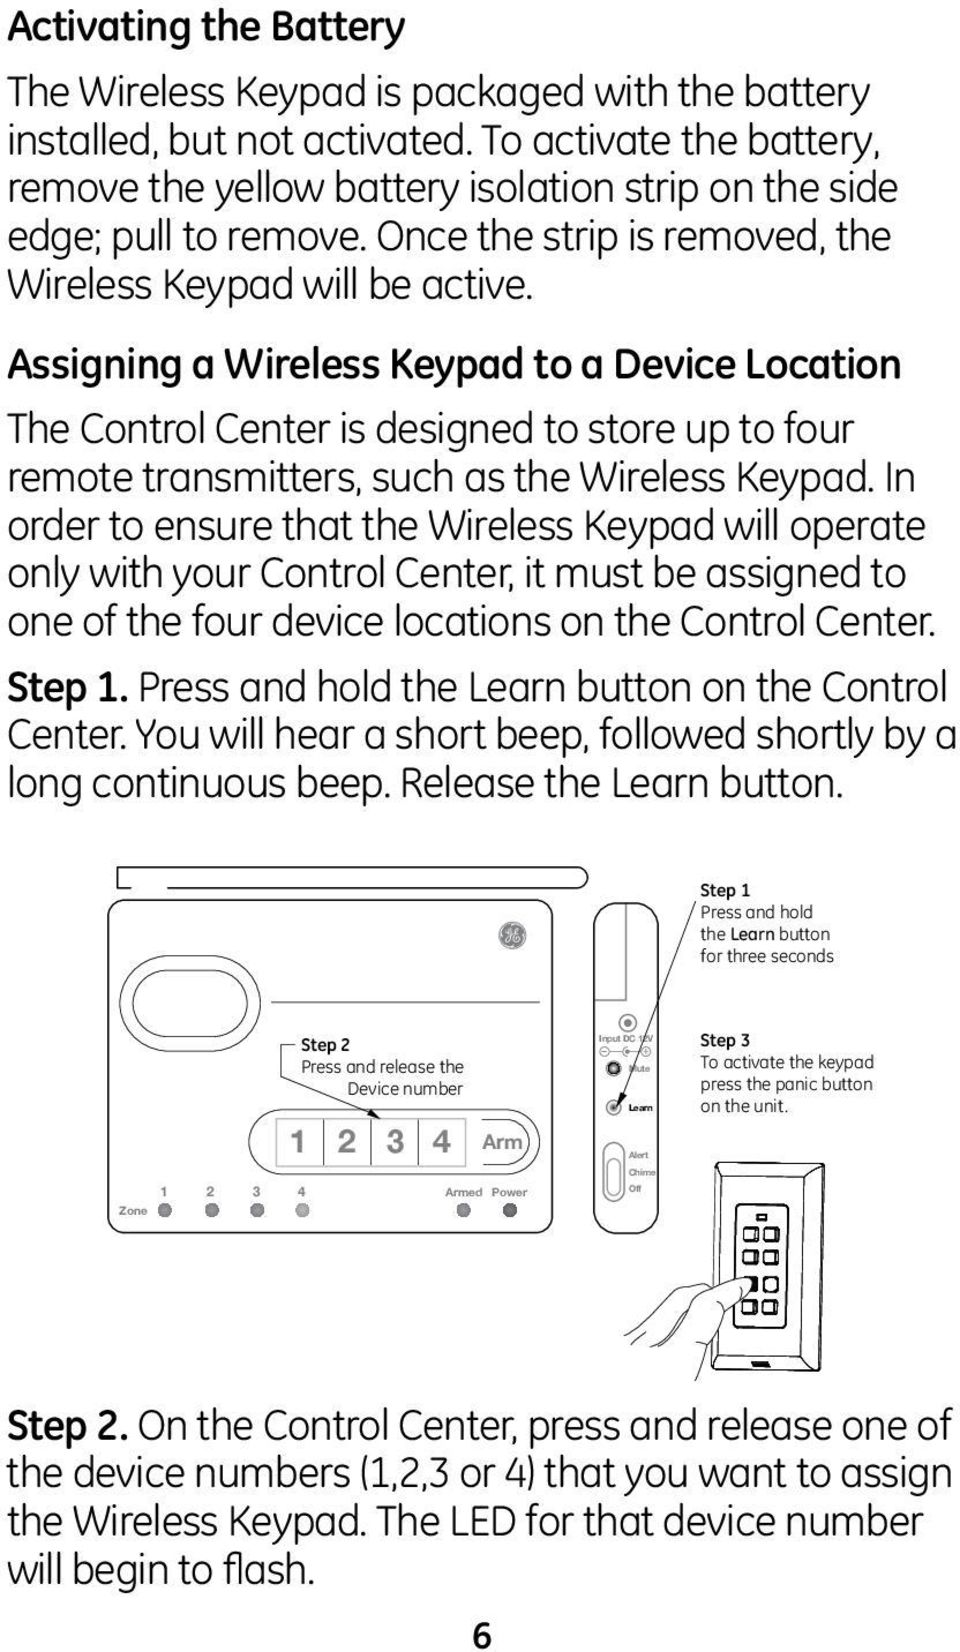 Assigning a Wireless Keypad to a Device Location The Control Center is designed to store up to four remote transmitters, such as the Wireless Keypad.